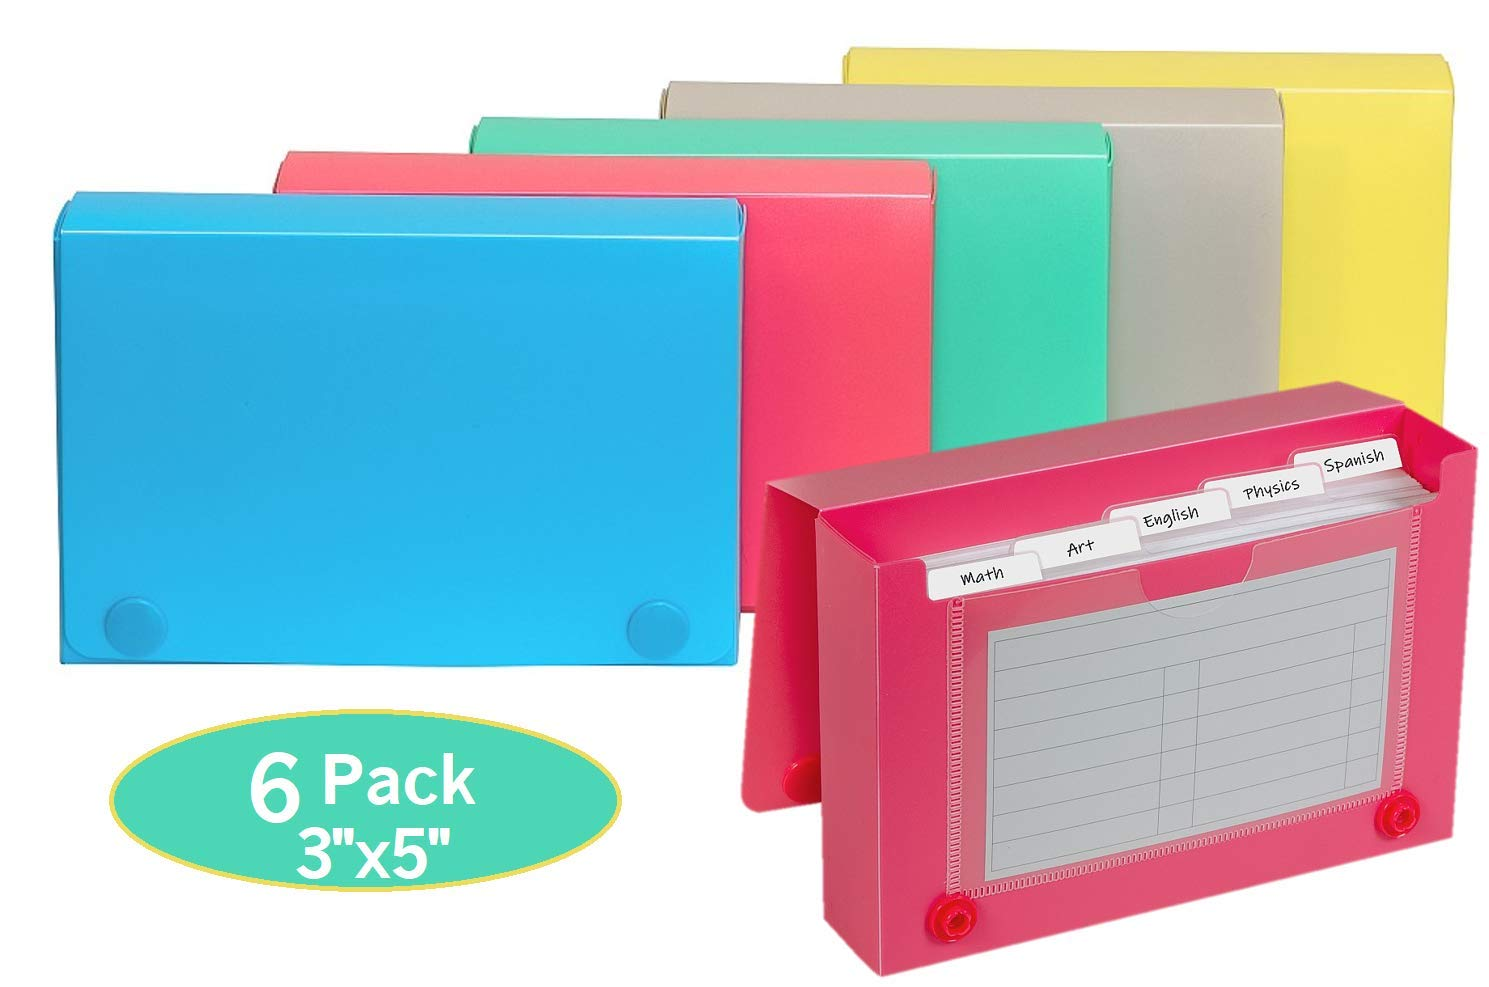 1InTheOffice Index Card Case, 3'' x 5'' Index Card Holder, Assorted Colors (6 Pack) by 1InTheOffice